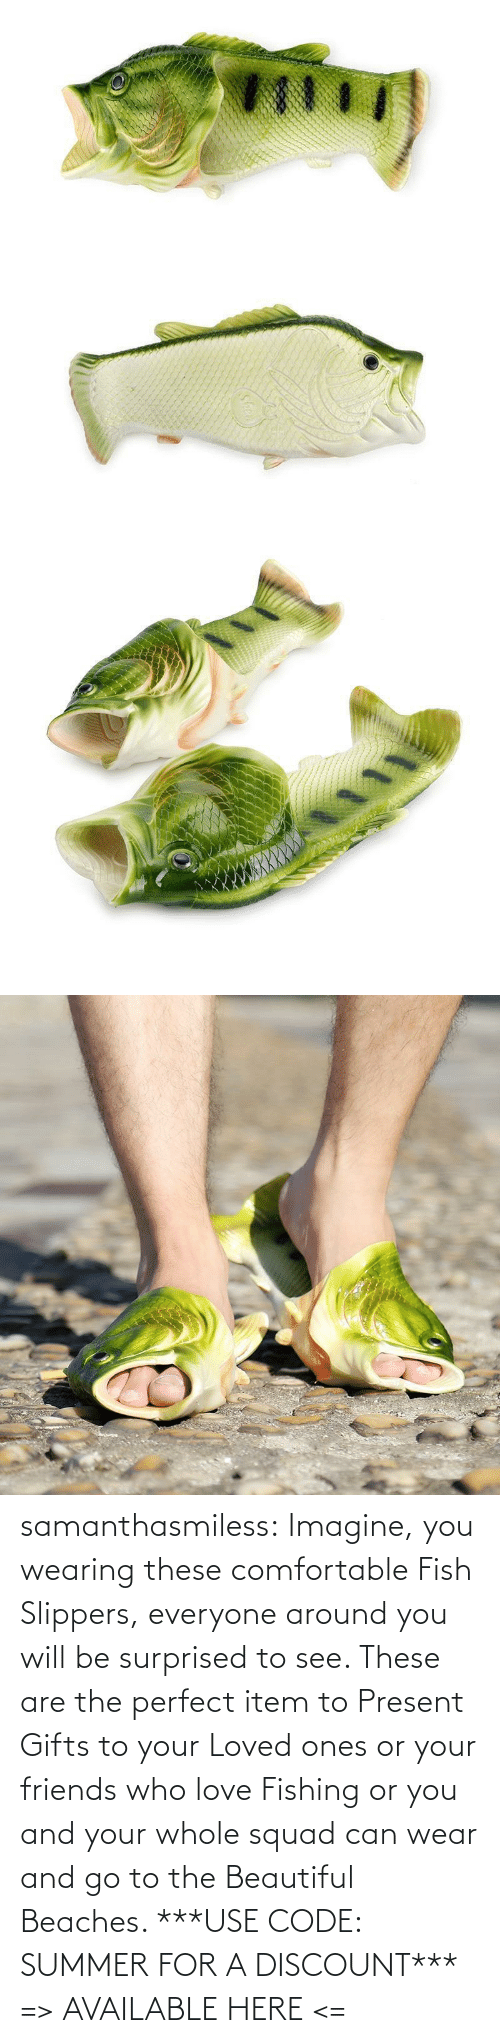 Love: samanthasmiless: Imagine, you wearing these comfortable Fish Slippers, everyone around you will be surprised to see. These are the perfect item to Present Gifts to your Loved ones or your friends who love Fishing or you and your whole squad can wear and go to the Beautiful Beaches.  ***USE CODE: SUMMER FOR A DISCOUNT*** => AVAILABLE HERE <=